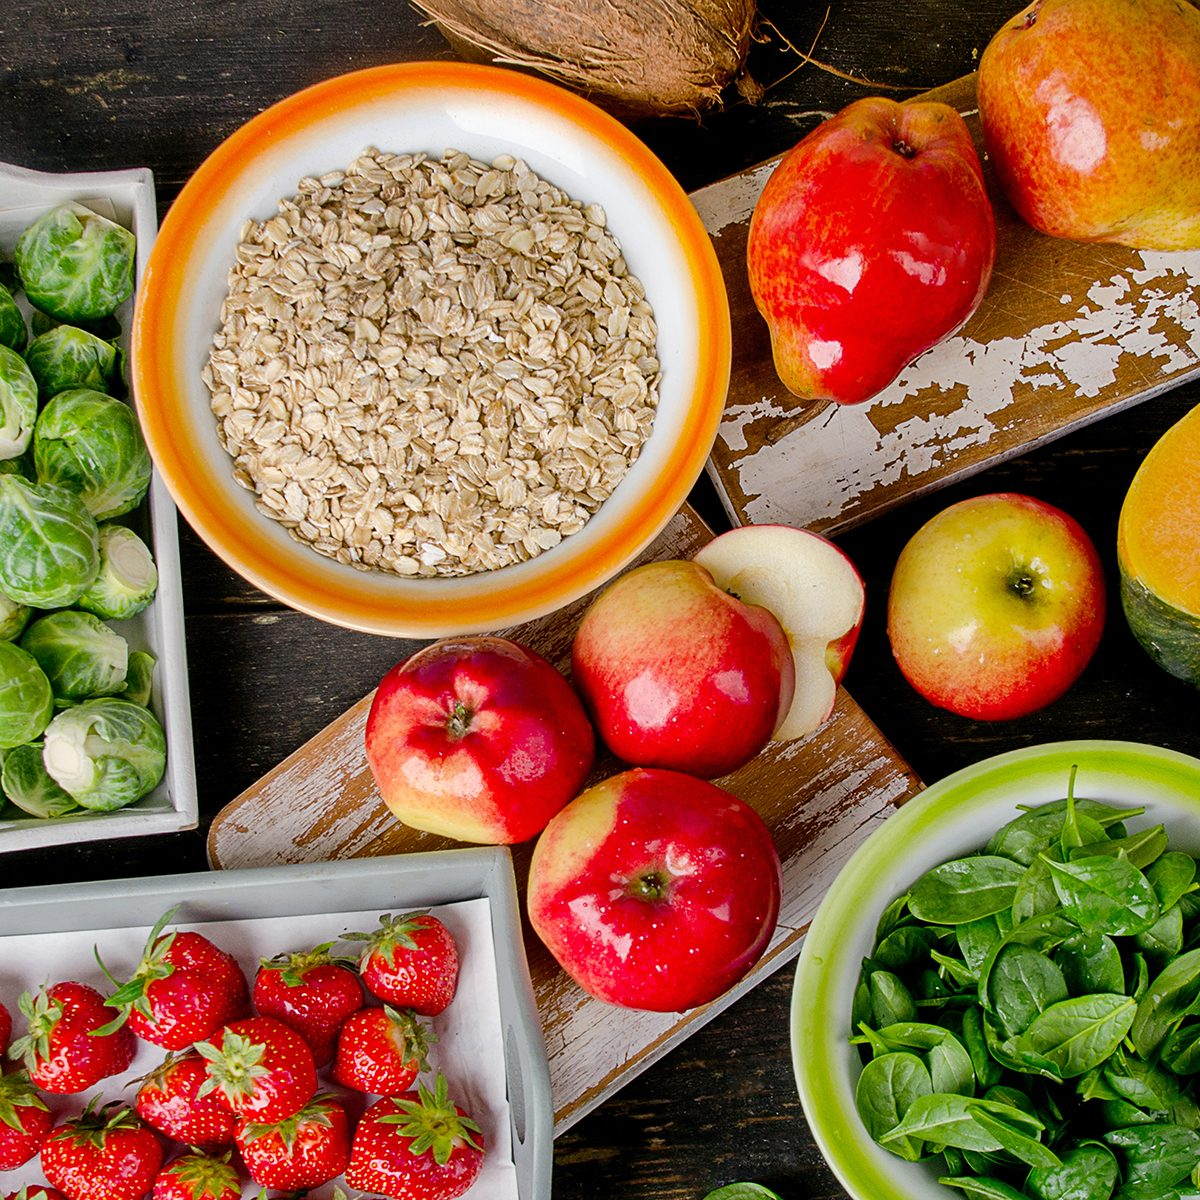 10 High Fiber Foods You Should Add To Your Grocery List